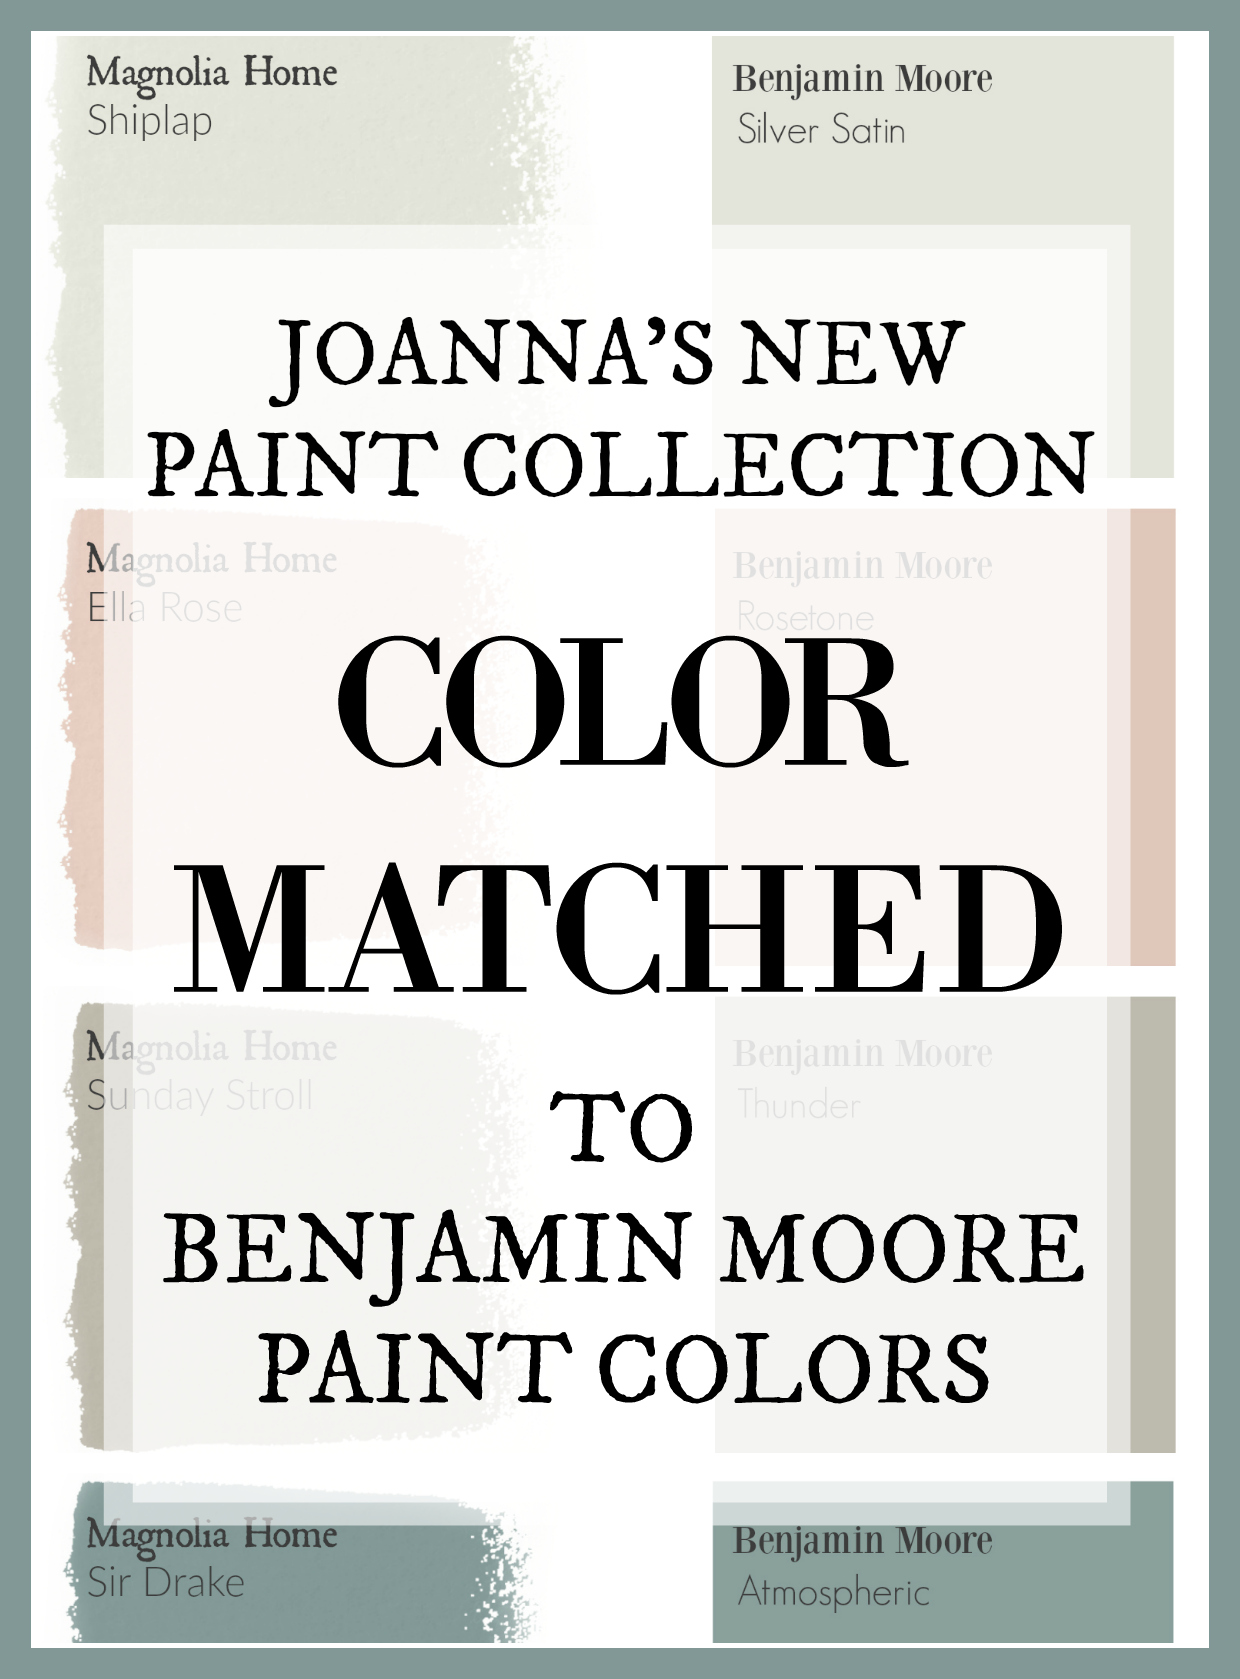 Fixer Upper Paint Colors Magnolia Home Paint Color Matched to